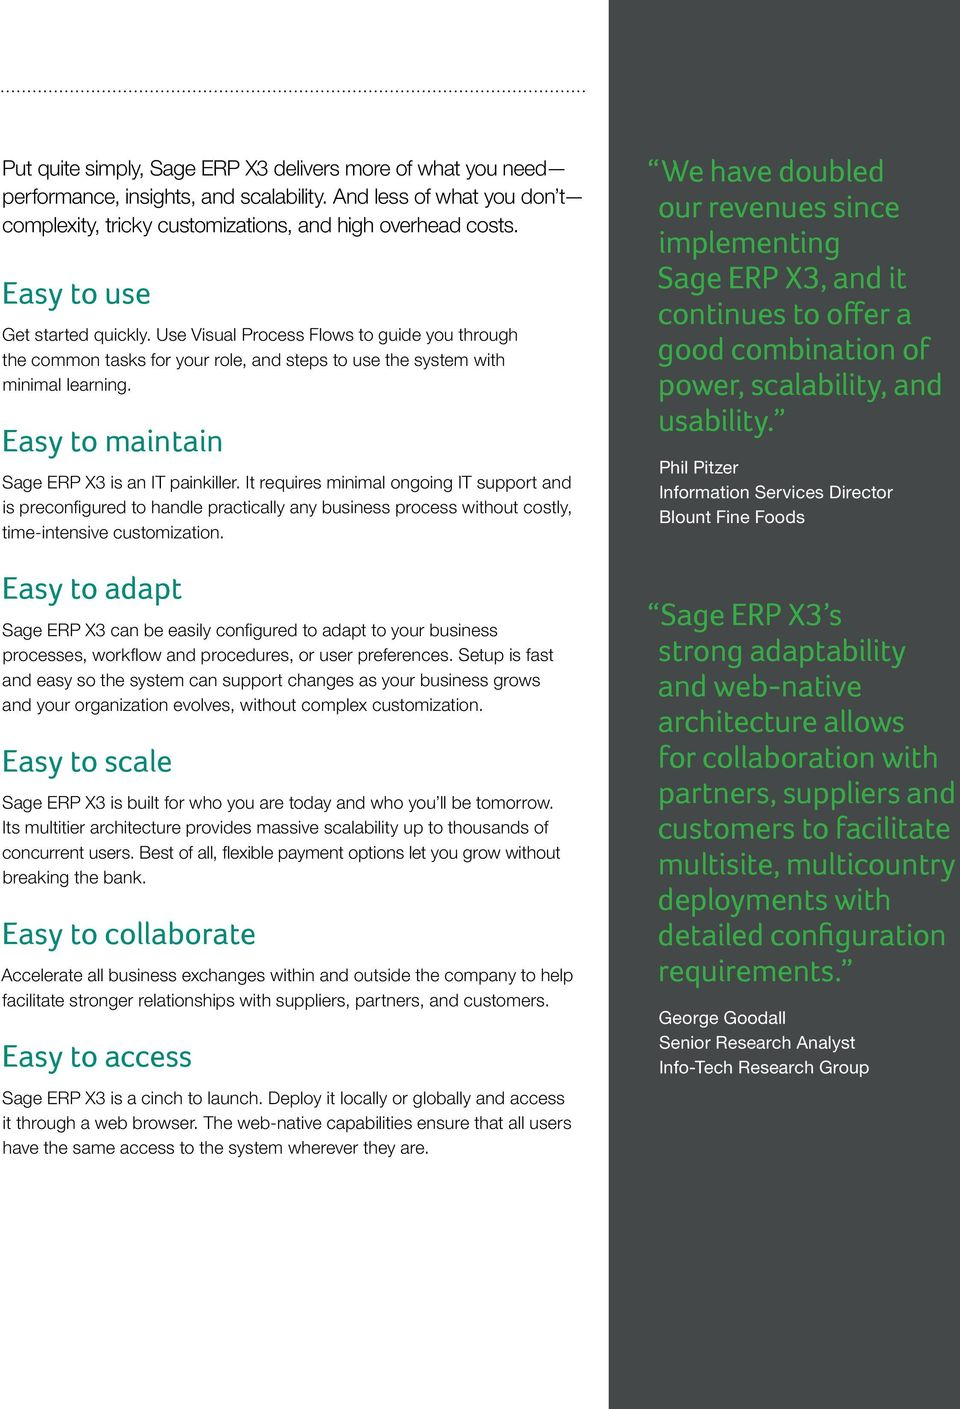 Easy to maintain Sage ERP X3 is an IT painkiller. It requires minimal ongoing IT support and is preconfigured to handle practically any business process without costly, time-intensive customization.